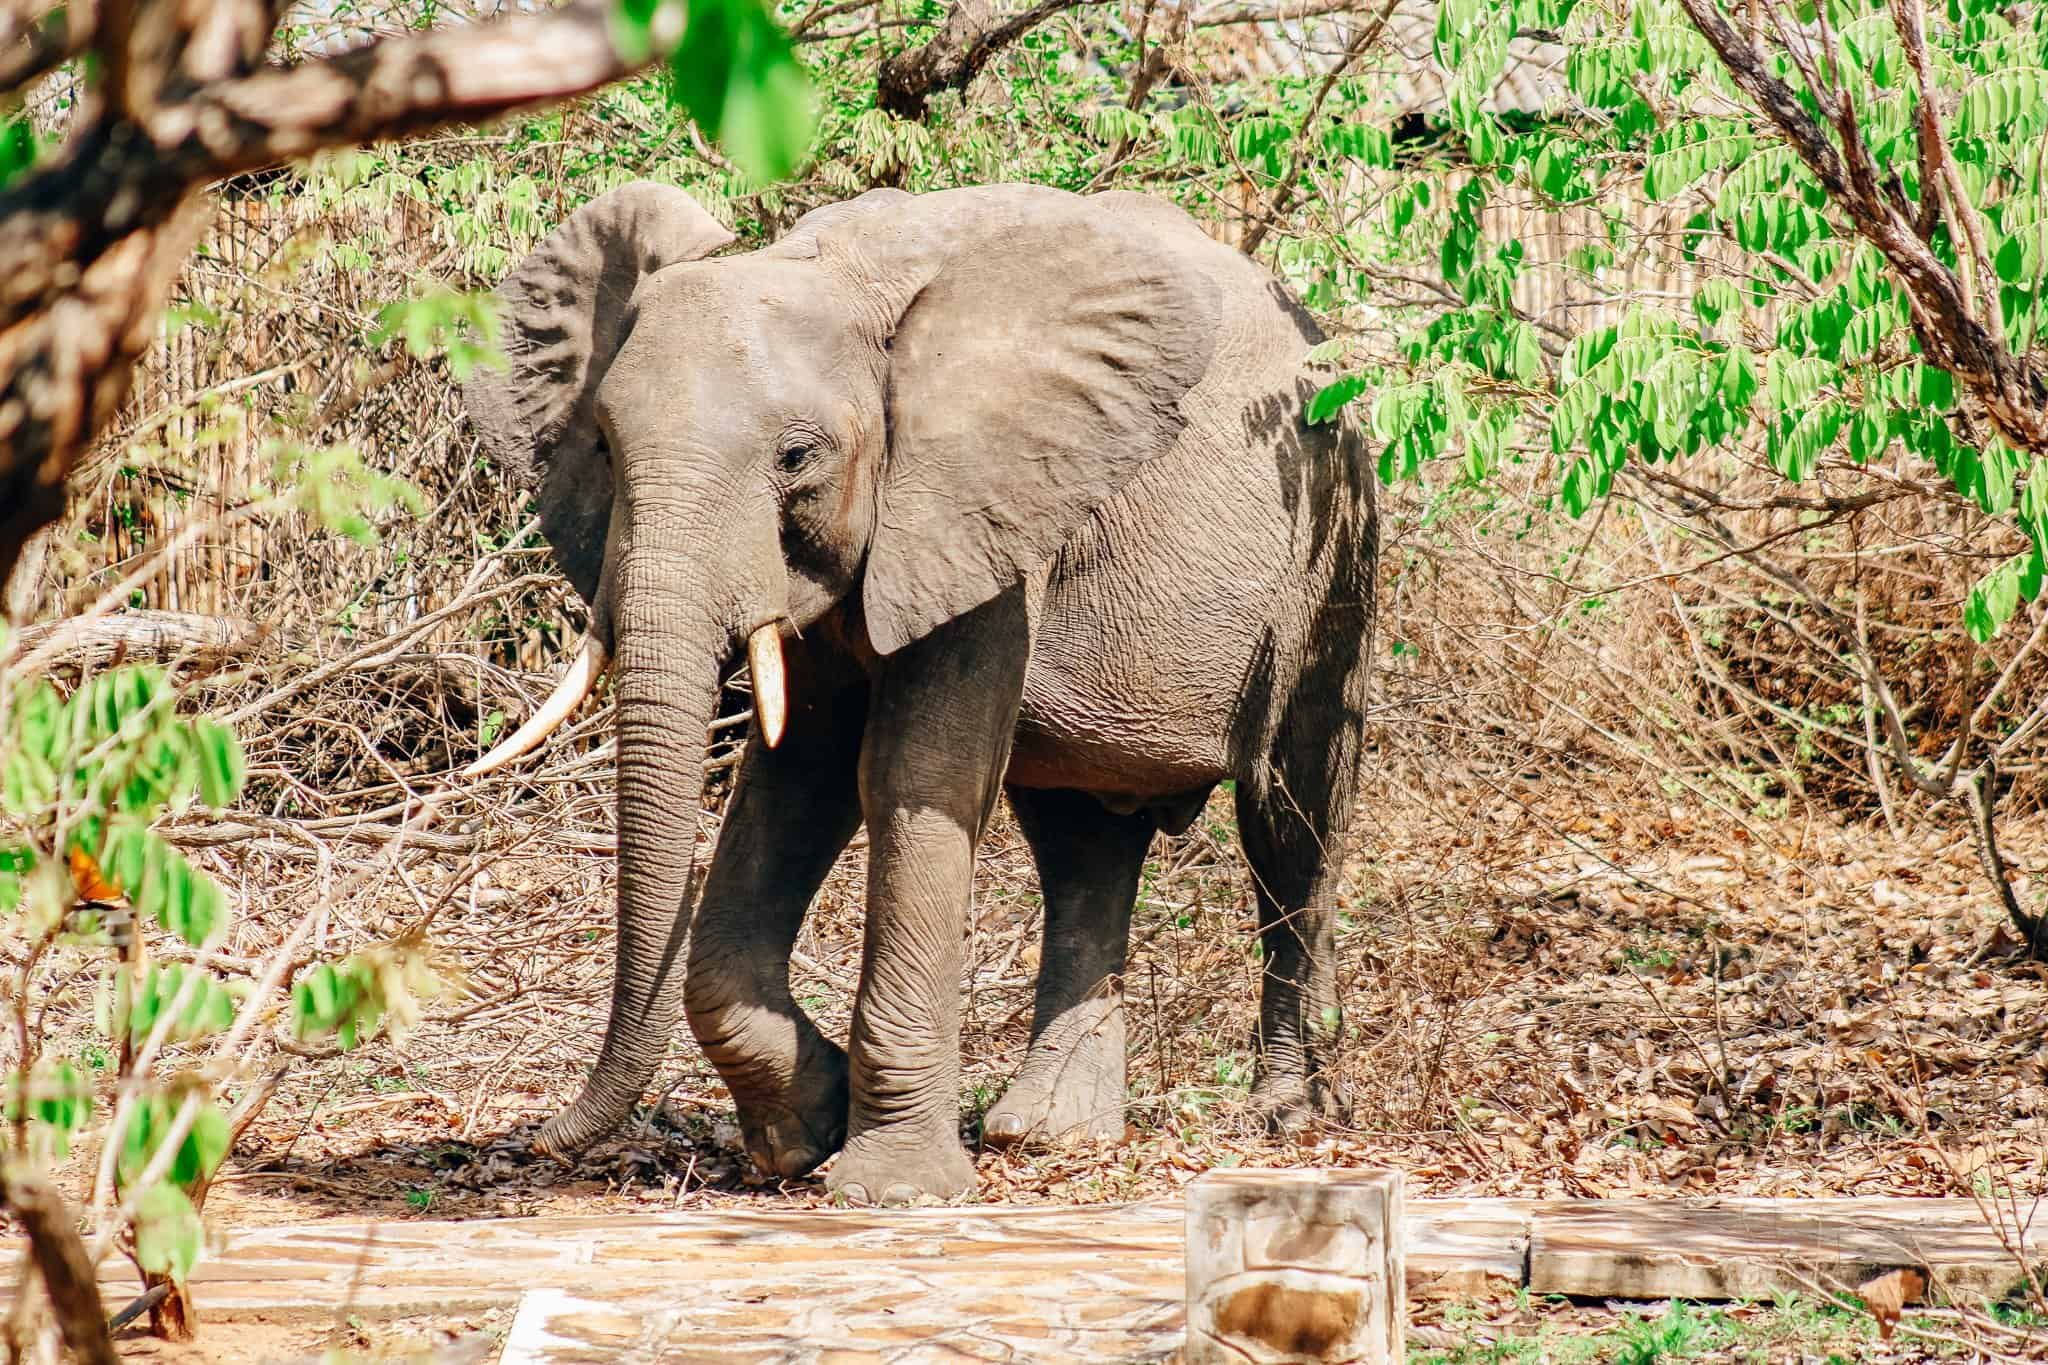 The Start of our First African Safari - Elephant at Rufiji River Camp